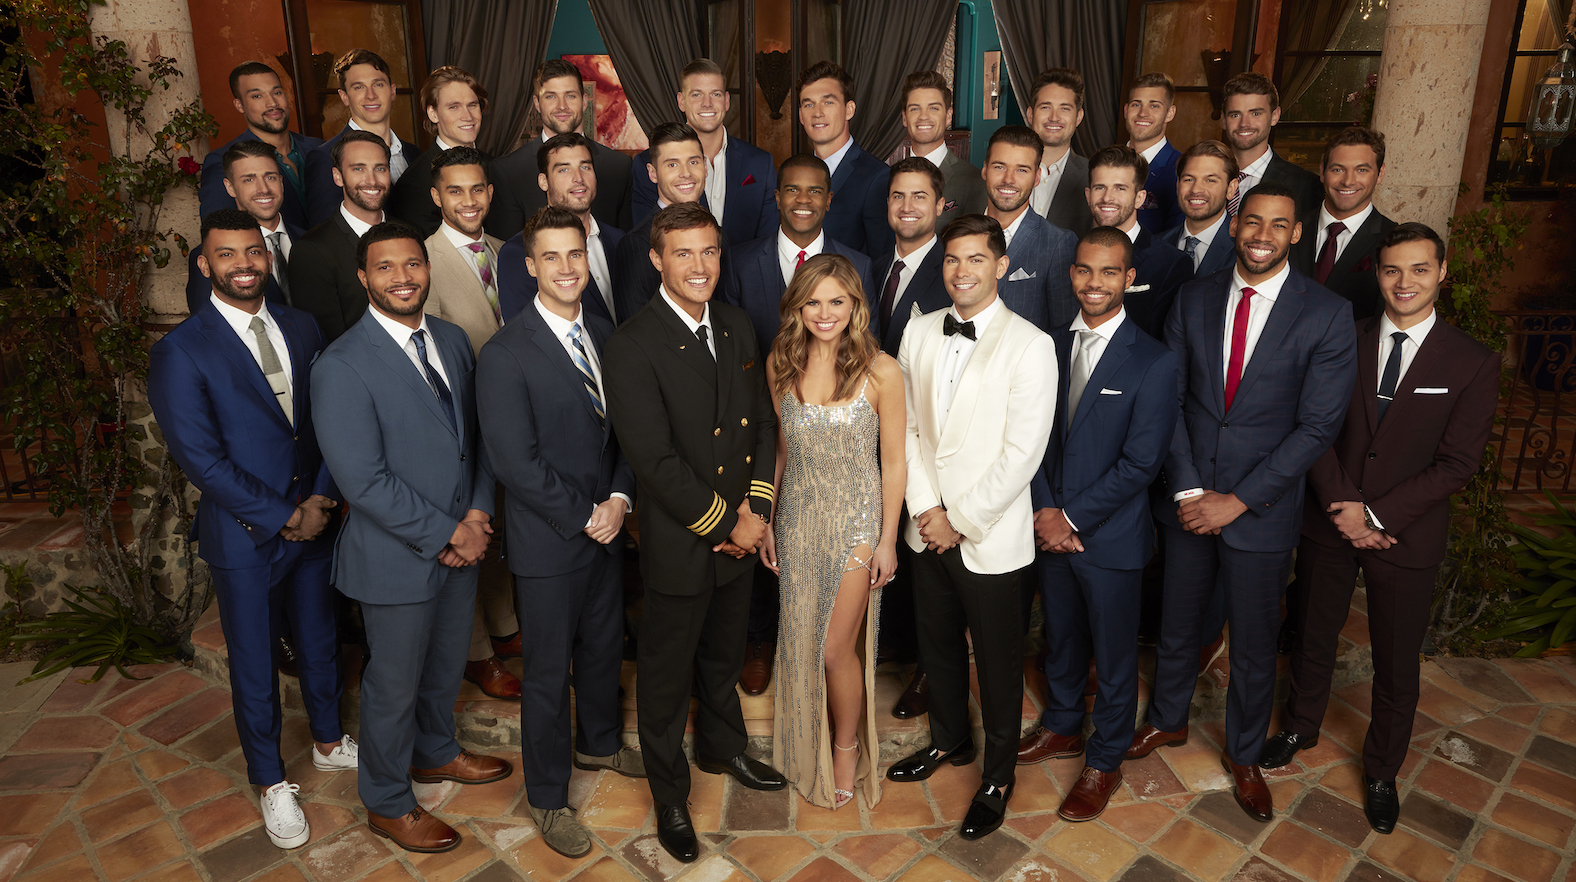 The Printable 'bachelorette' Bracket For Hannah B.'s Season in Bachelor Bracket Printable